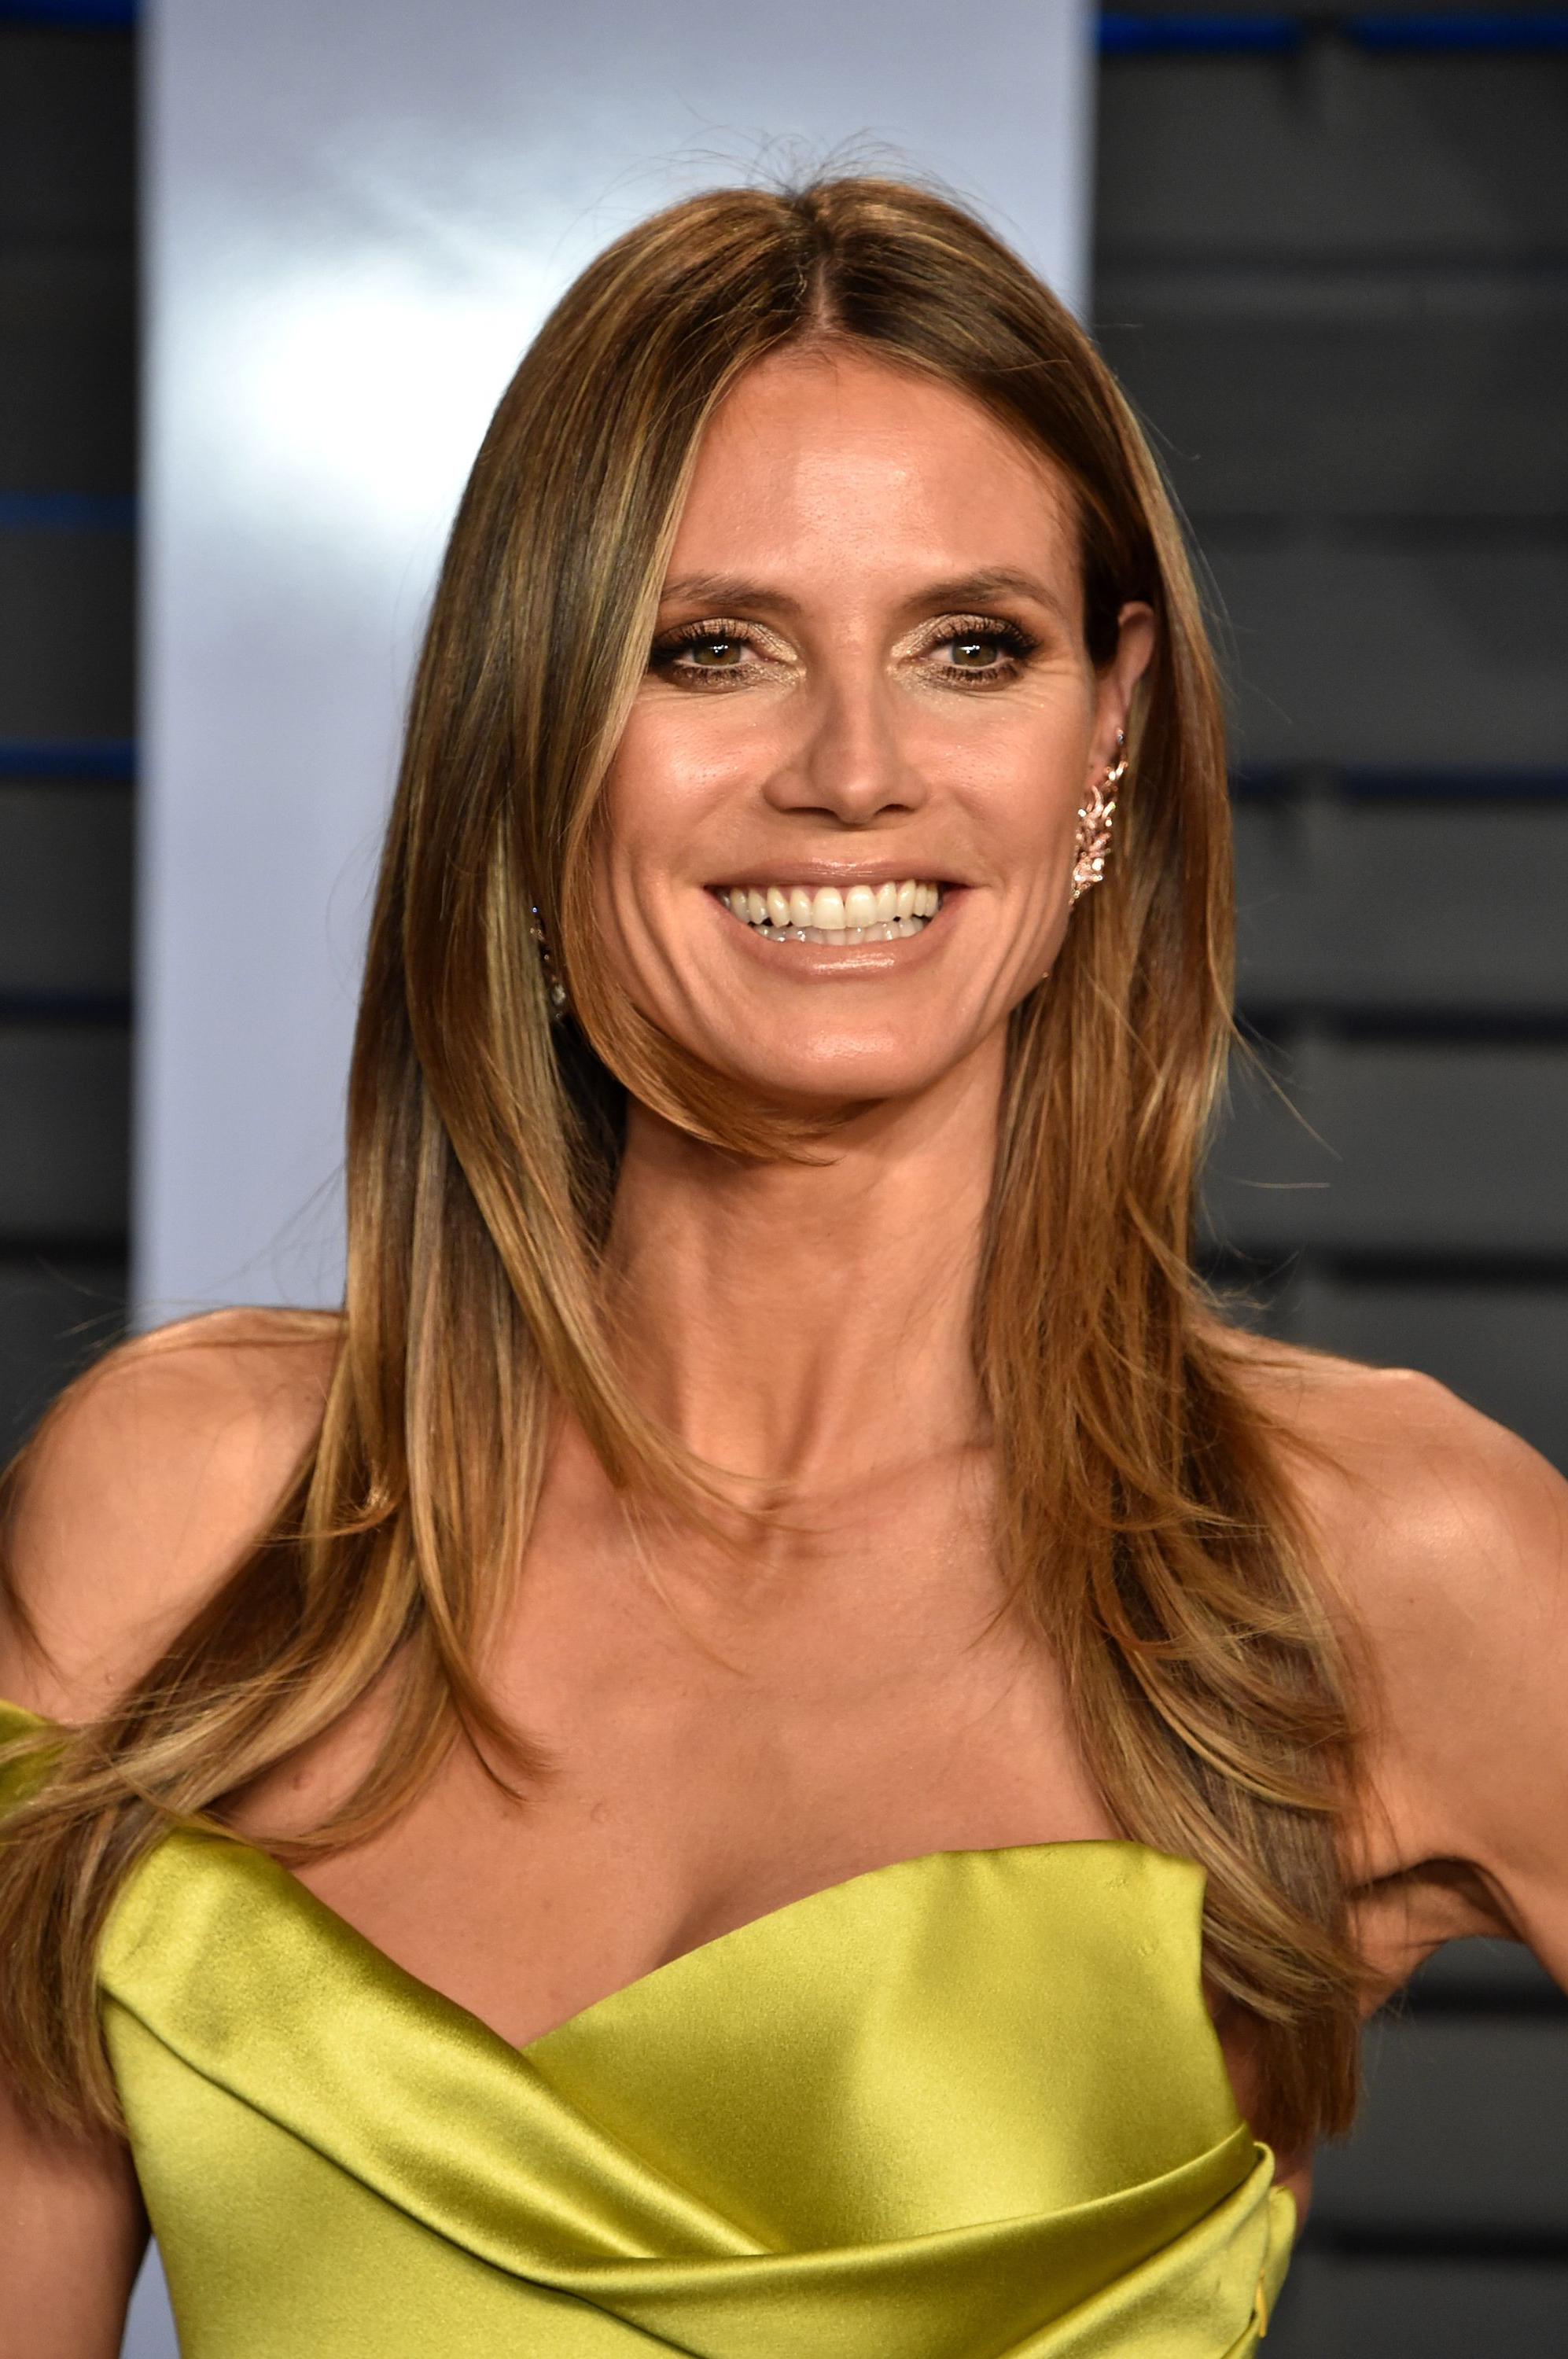 60 Layered Hairstyles & Cuts For Long Hair – Long, Layered Hair Ideas Intended For Heidi Klum Short Haircuts (View 23 of 25)